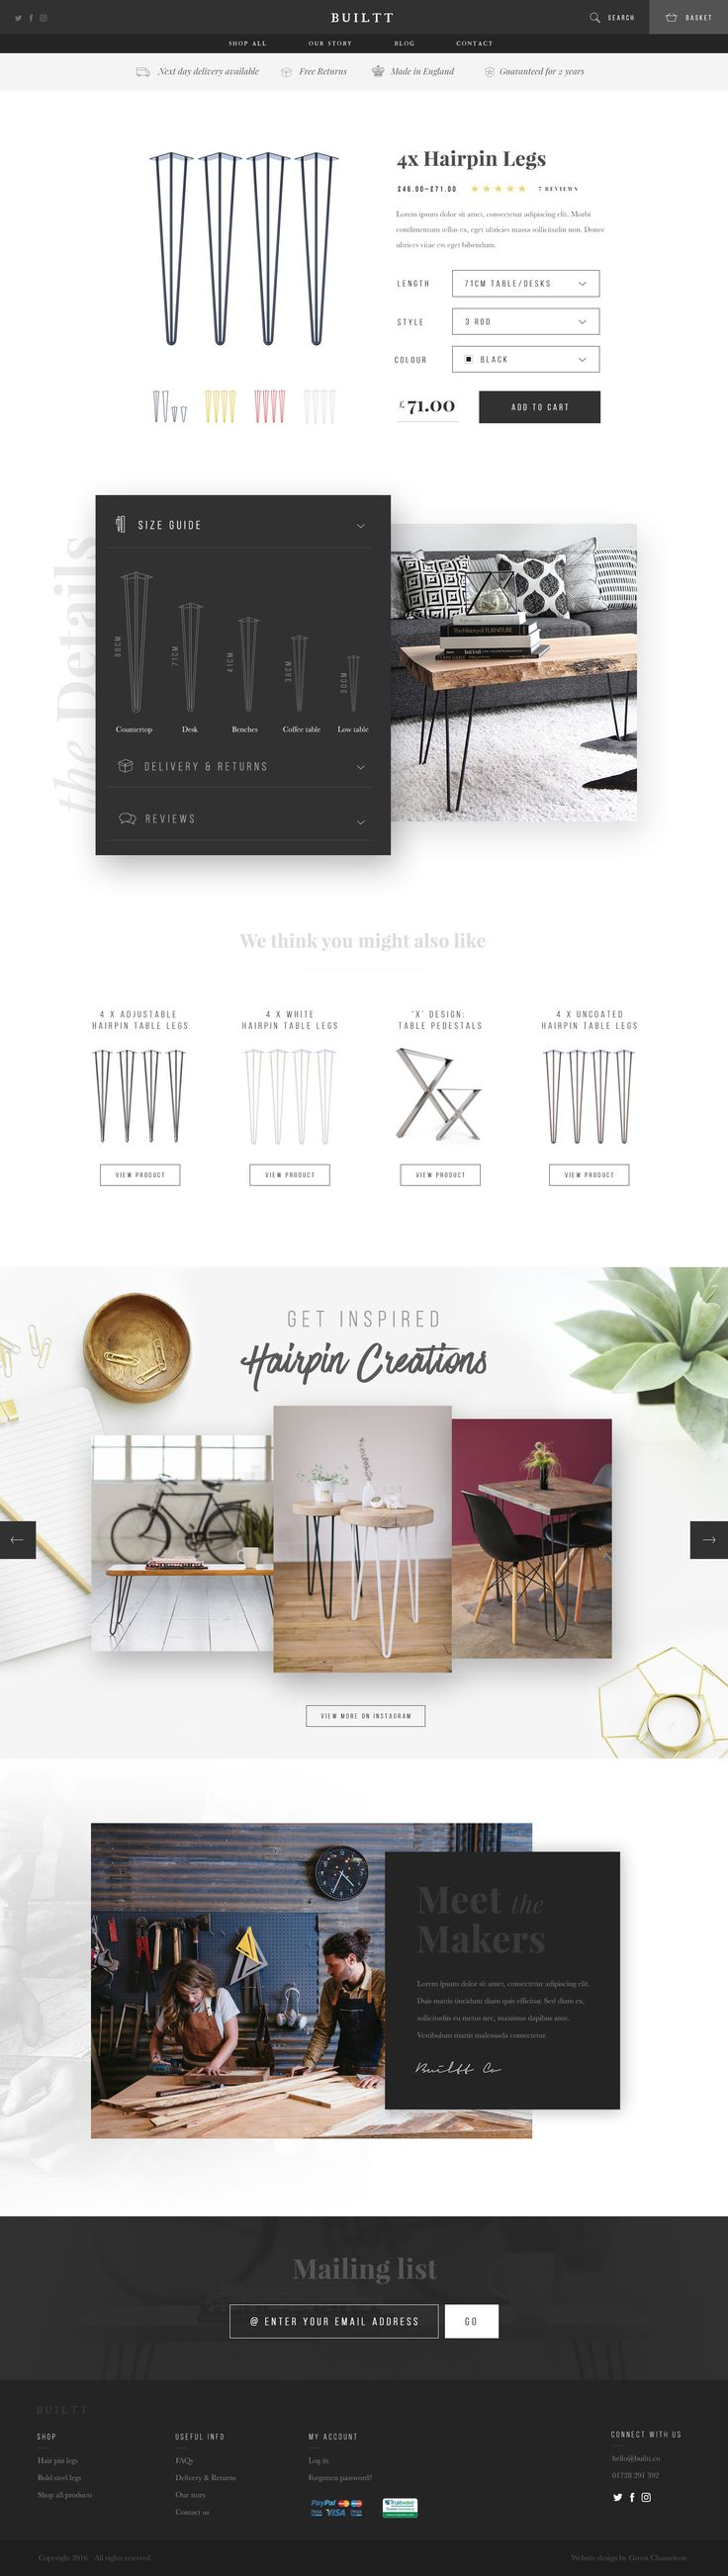 Furniture Website Product Page